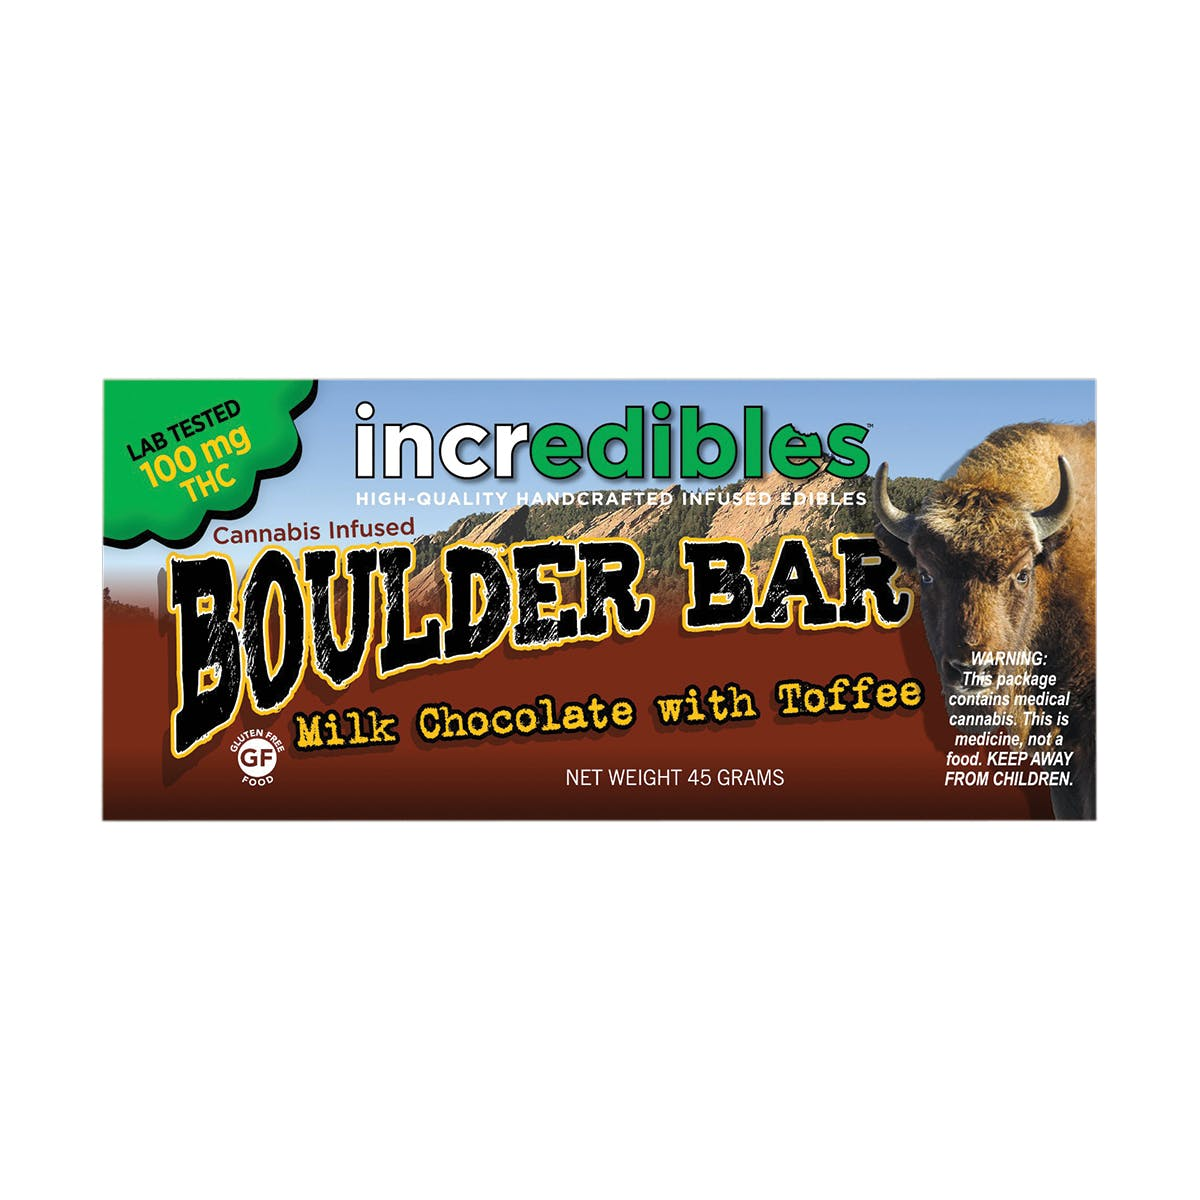 marijuana-dispensaries-emerald-city-wellness-in-colorado-springs-boulder-bar-2c-100mg